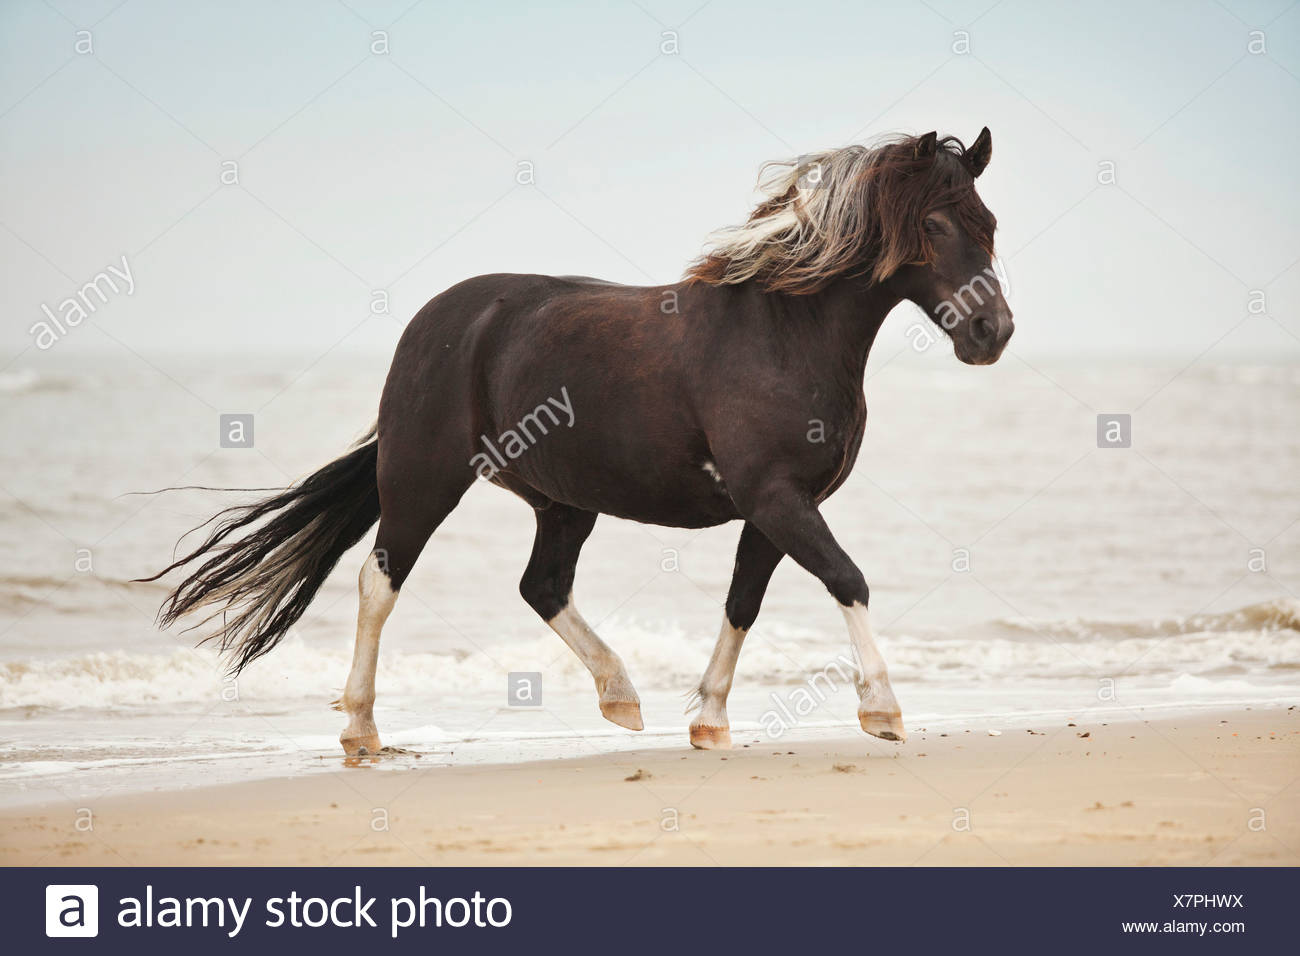 Lewitzer gelding, pony, running at a trot while roaming free on the beach of Borkum, Lower Saxony, Germany - Stock Image